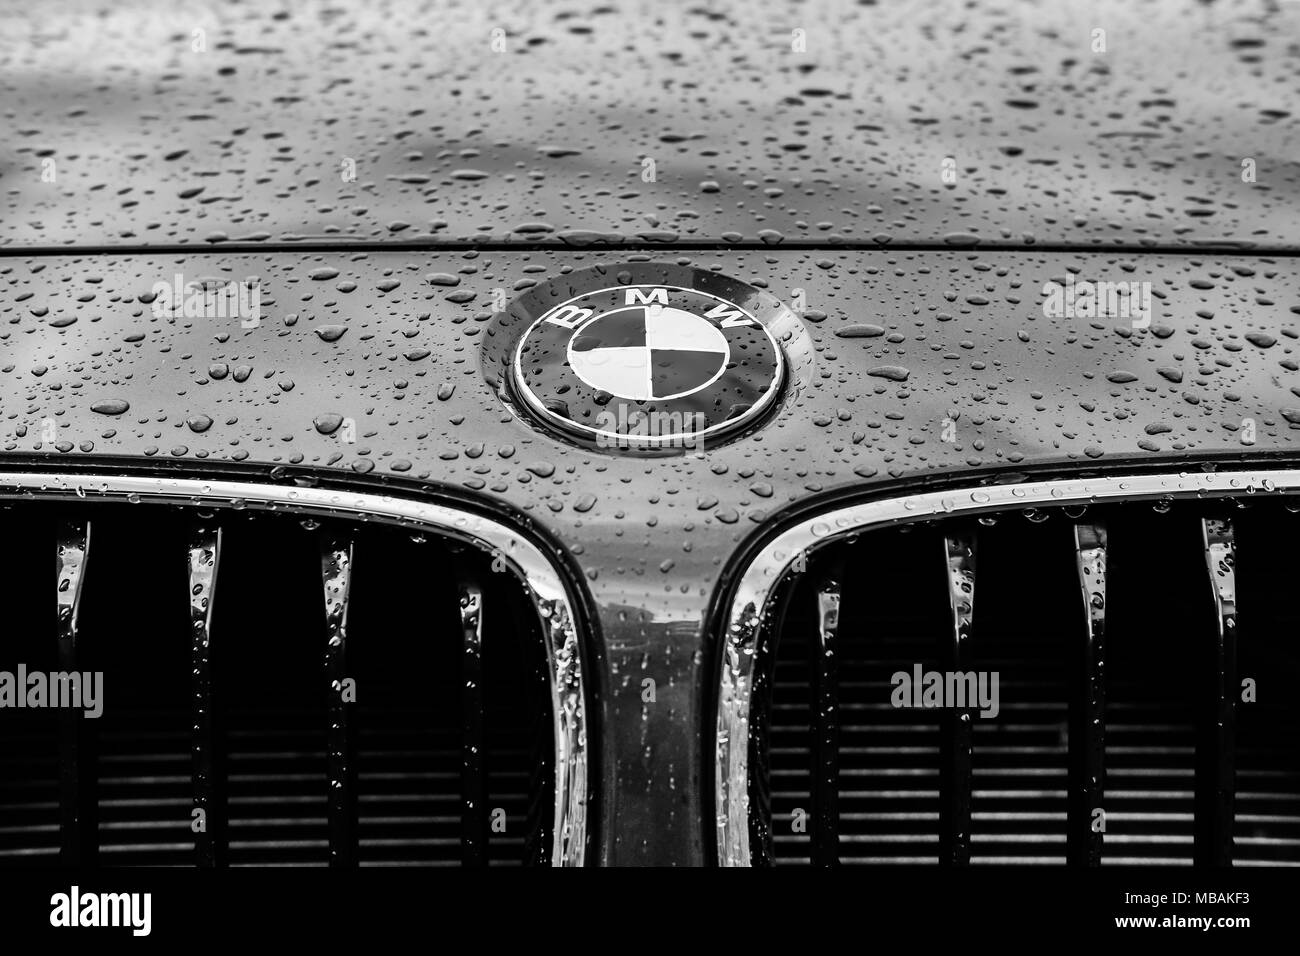 Monochrome image of a luxury, german-made sports car showing details of its badge and grille area. - Stock Image